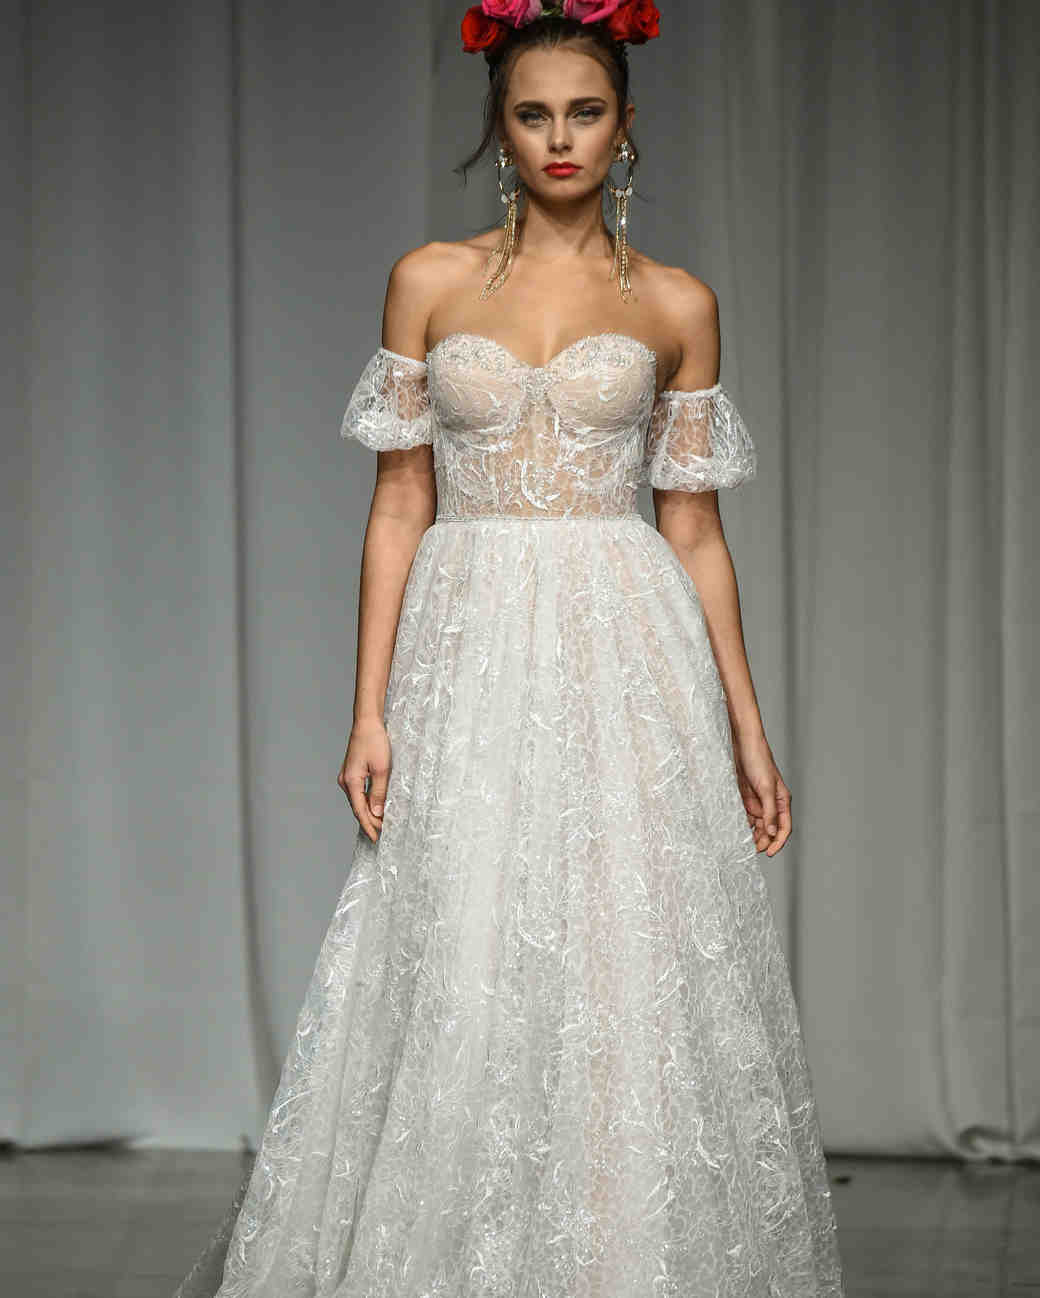 julie vino group fall 2019 over the shoulder corset a-line wedding dress